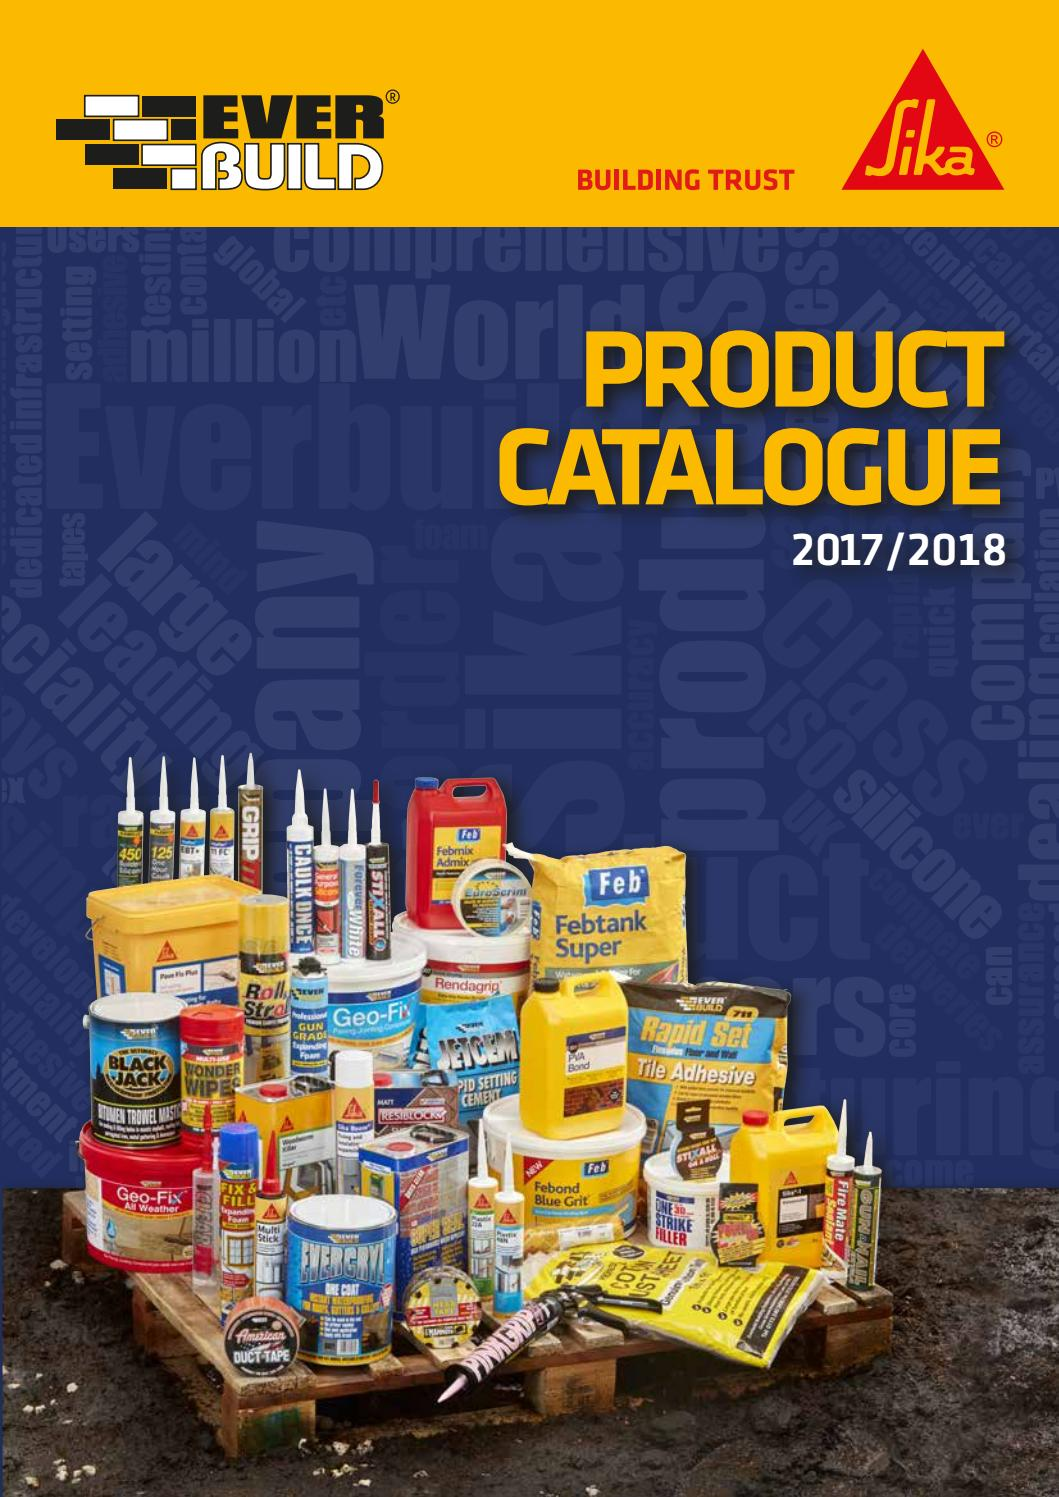 Sika Everbuild Catalogue 2017 2018 By Sika Everbuild Issuu